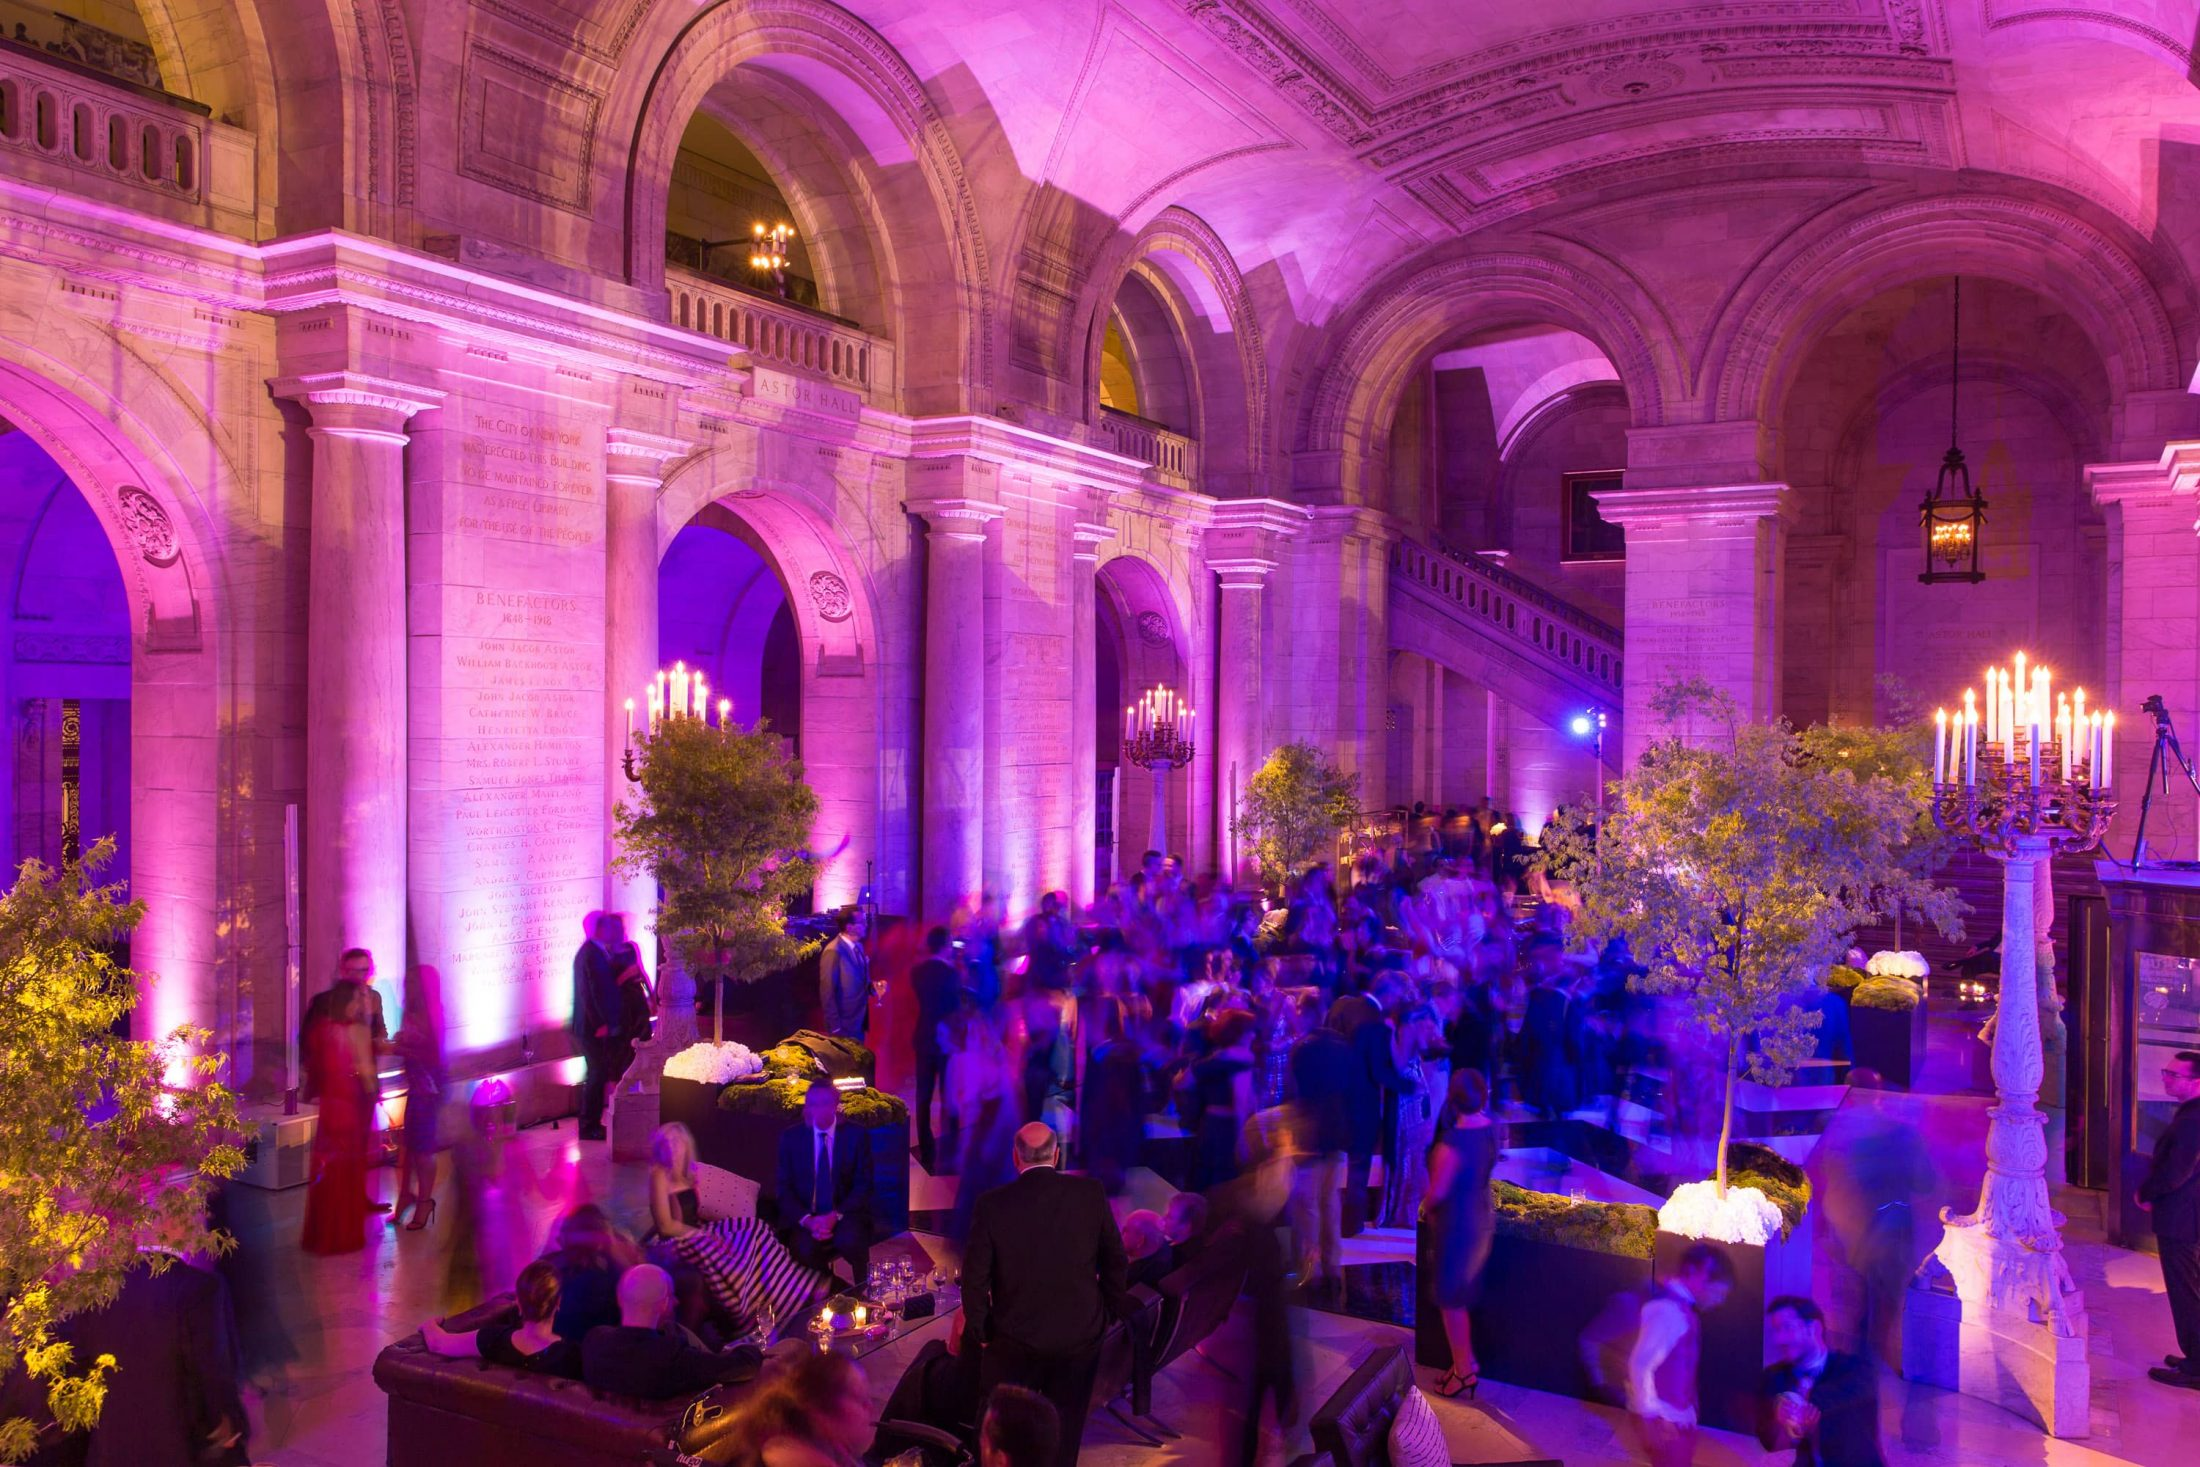 Guests during pink-hued reception at this New York Public Library wedding | Photo by Genevieve de Manio